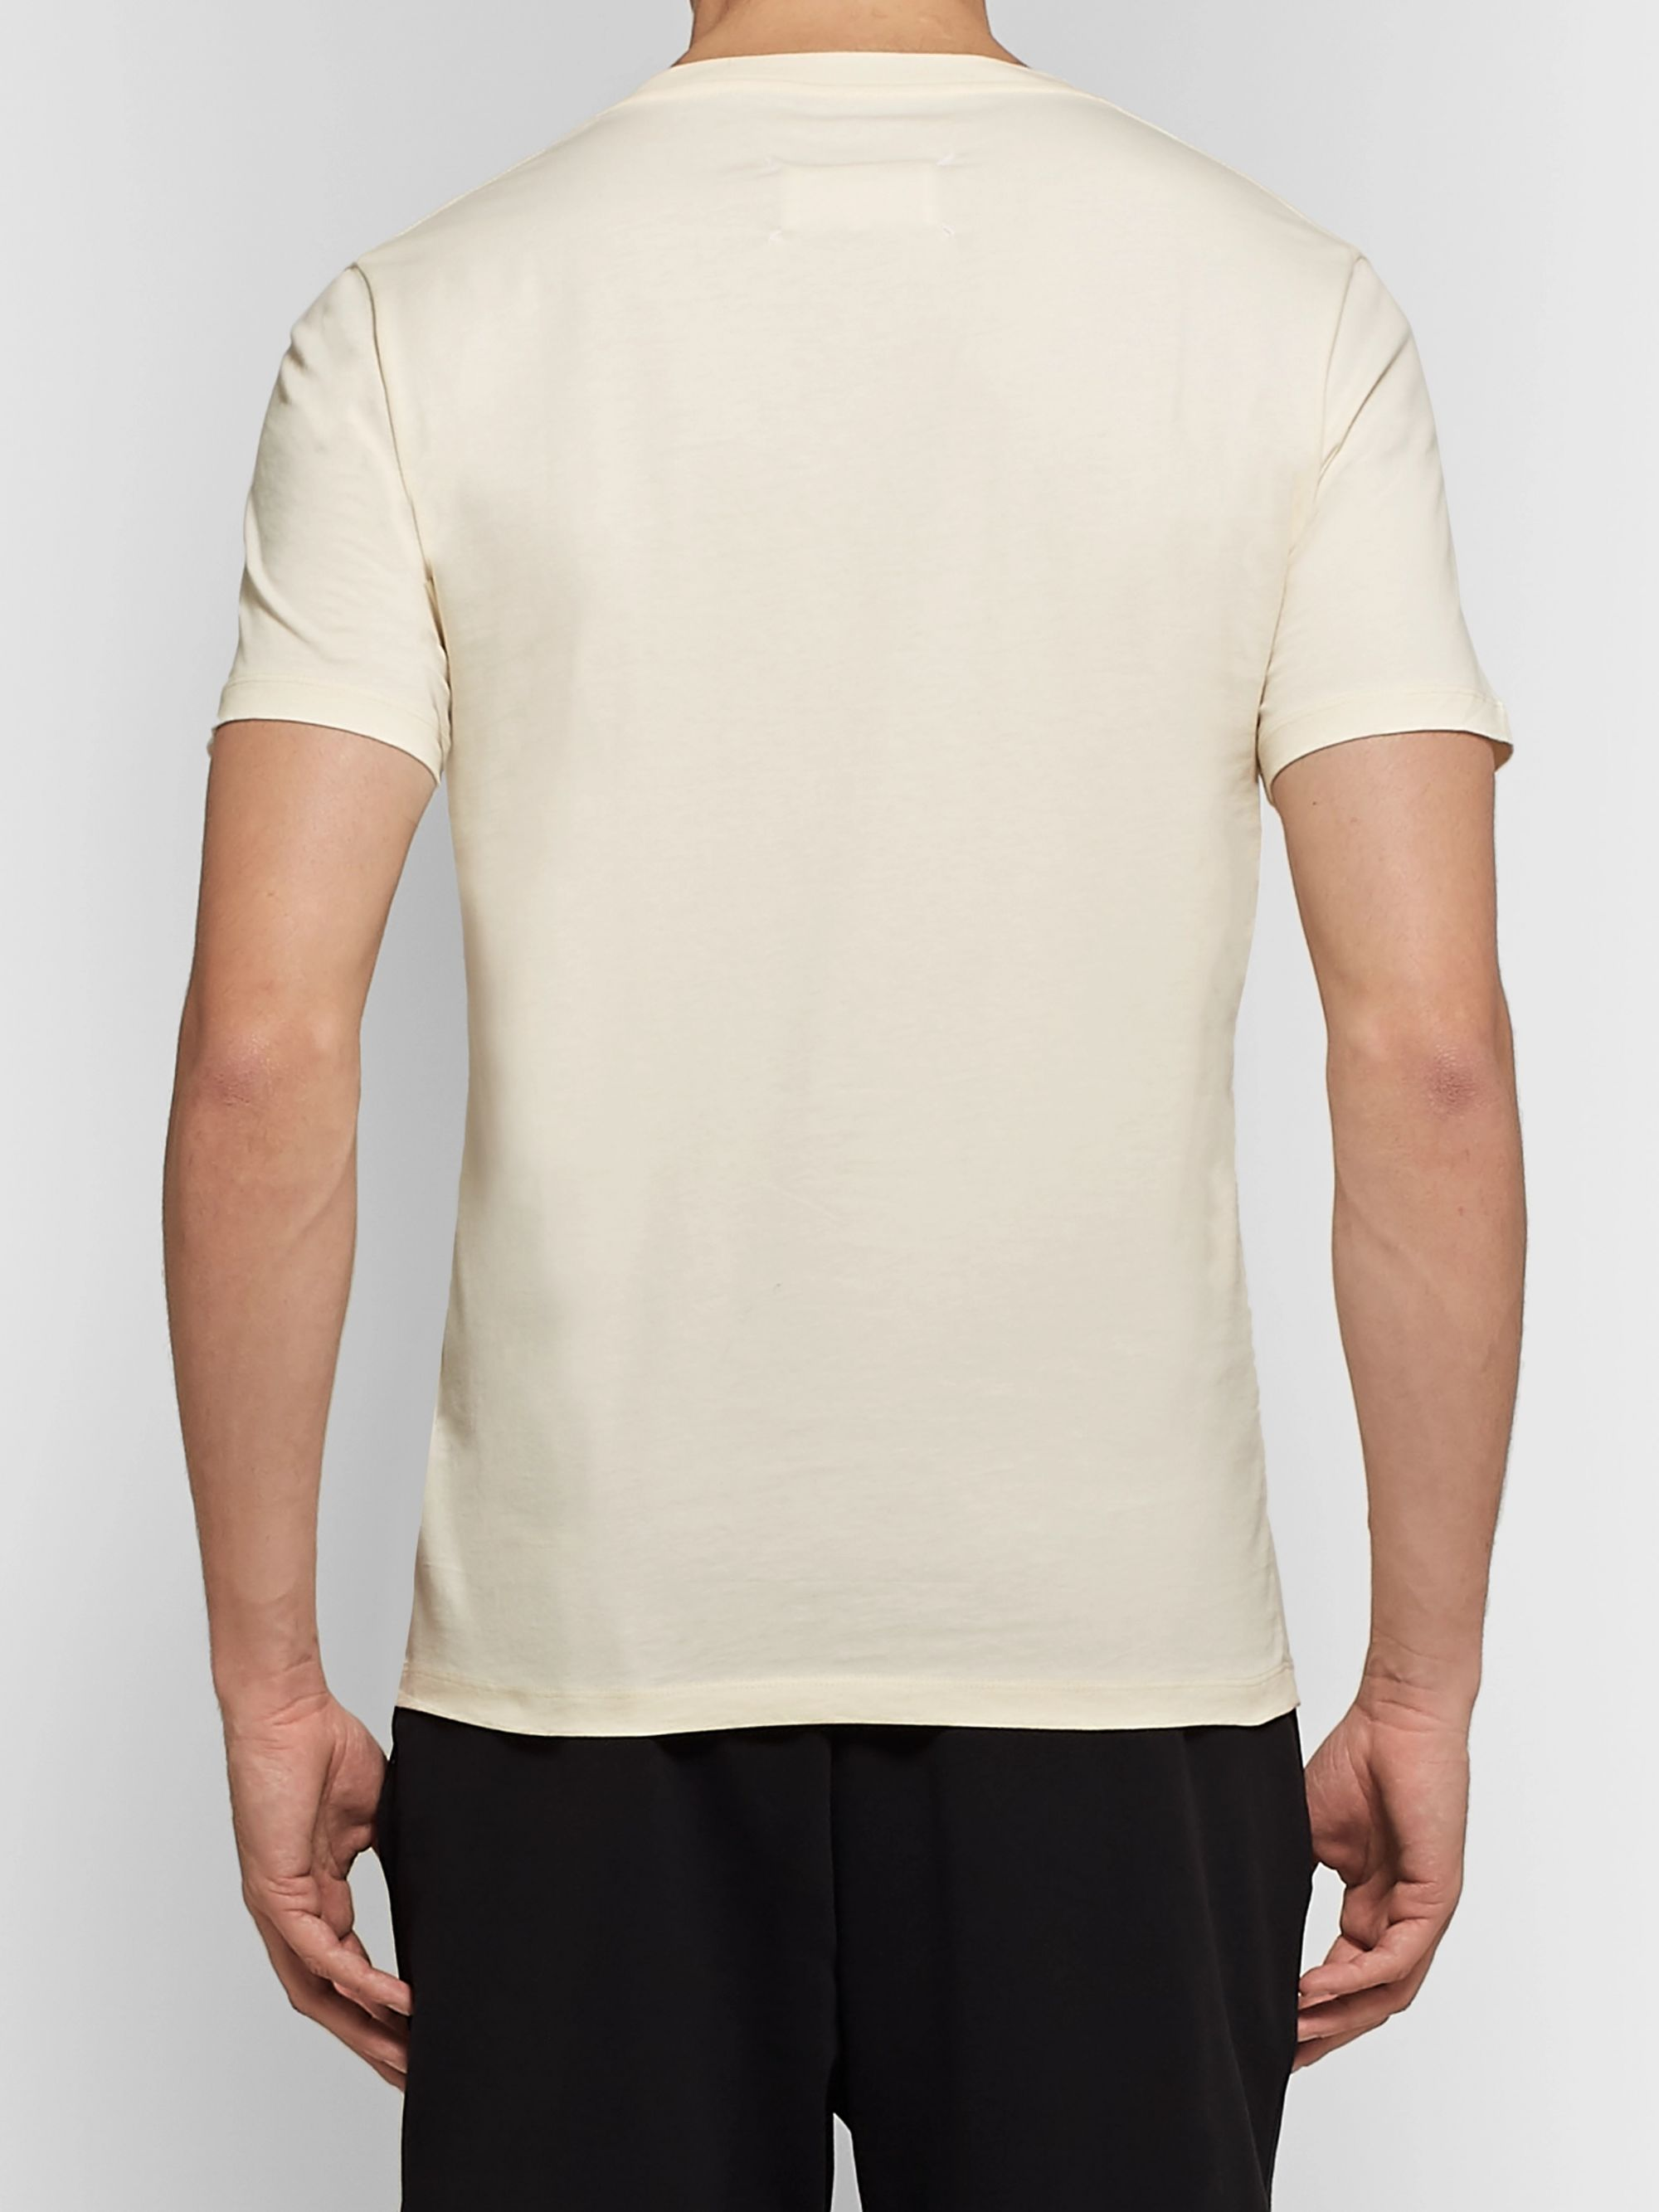 Maison Margiela Shell-Panelled Cotton-Jersey T-Shirt